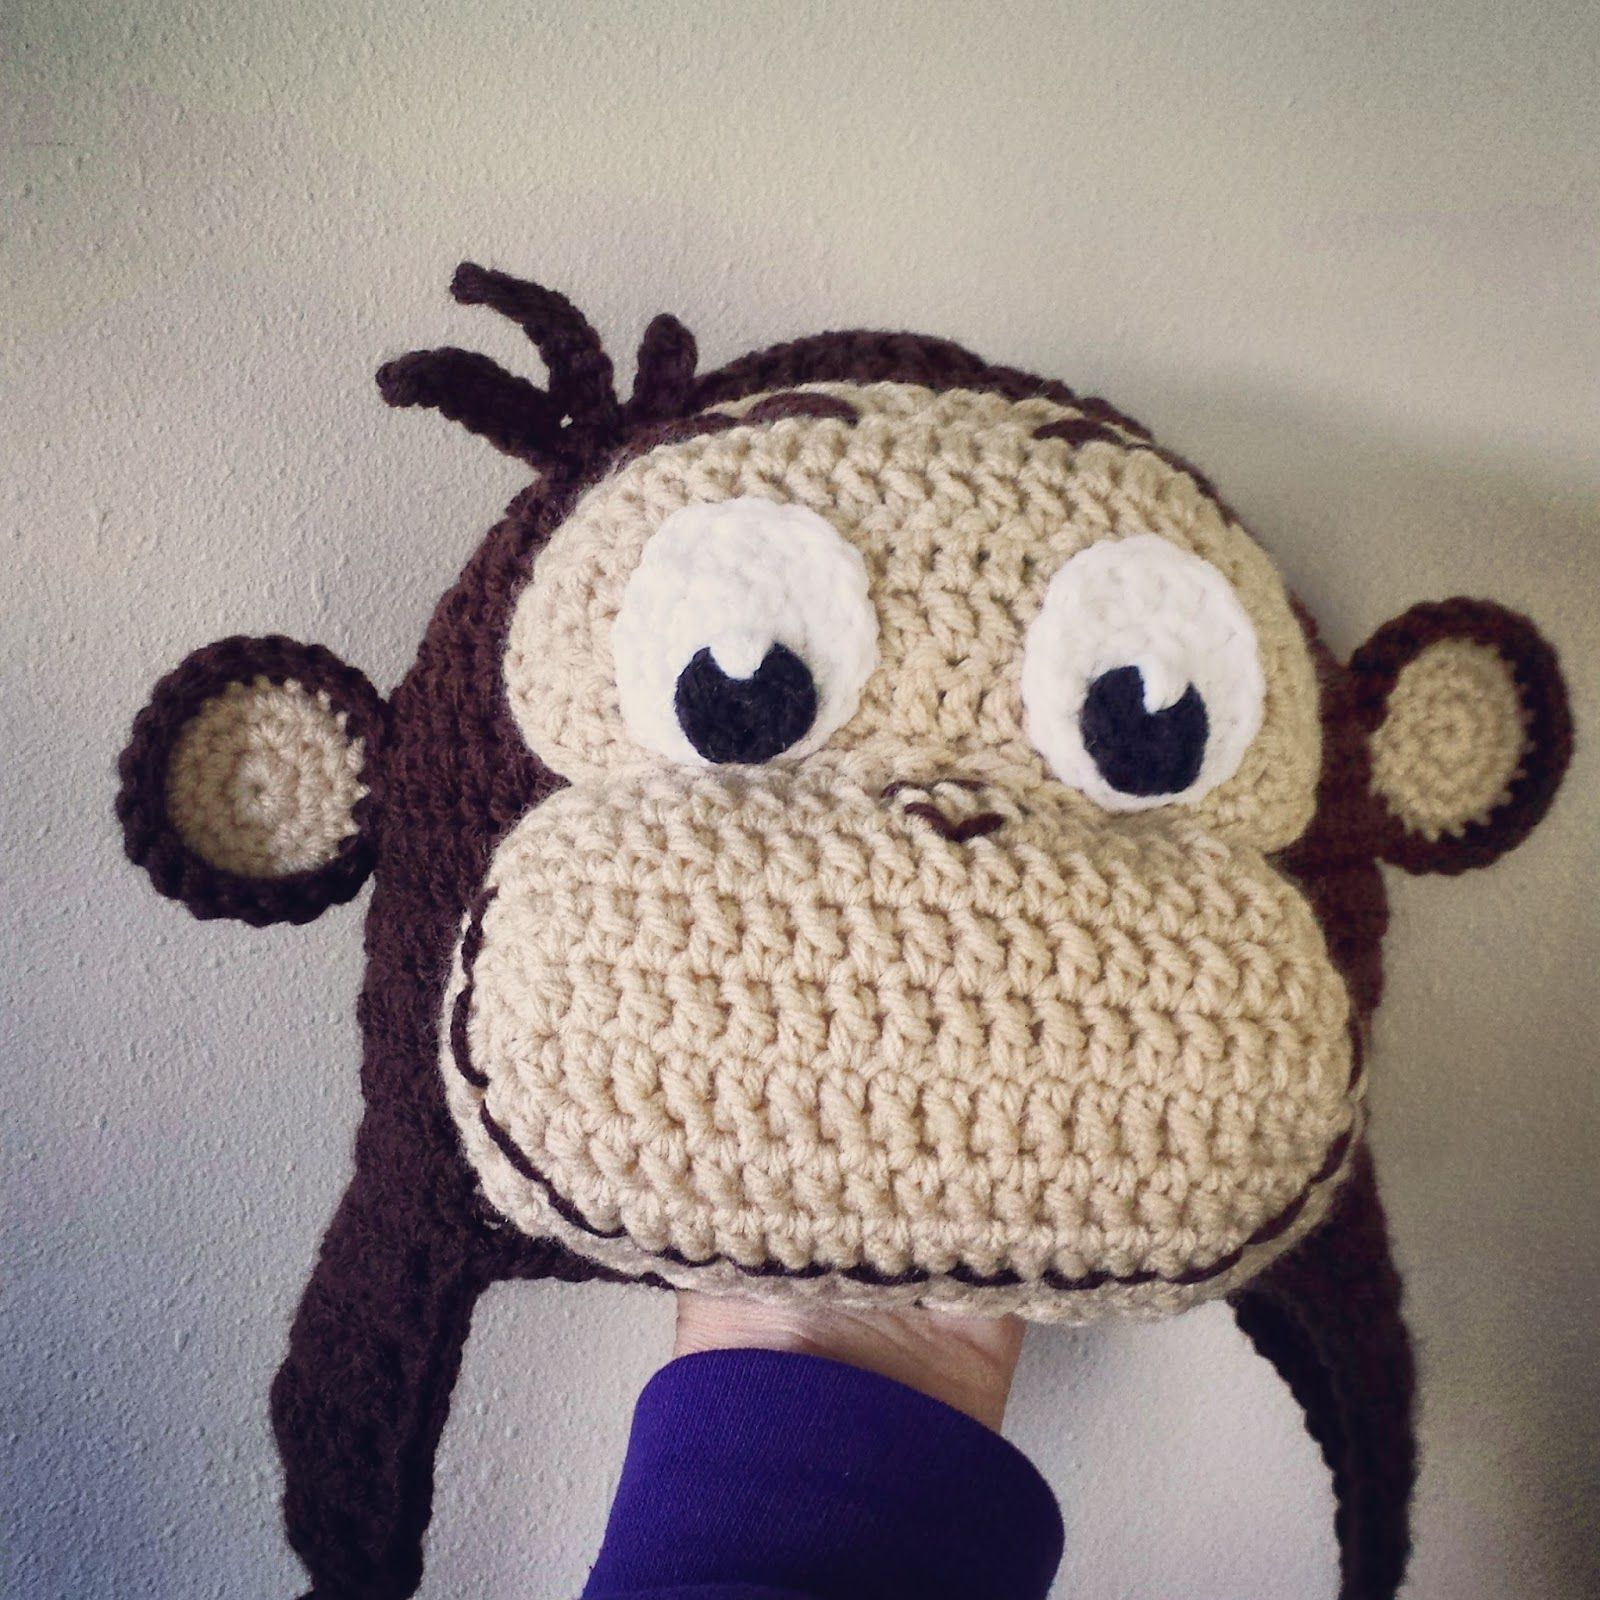 Free Crochet Patterns Monkey Hat : Lovebugs and Monkeys: Crochet Curious George Hat *Free ...